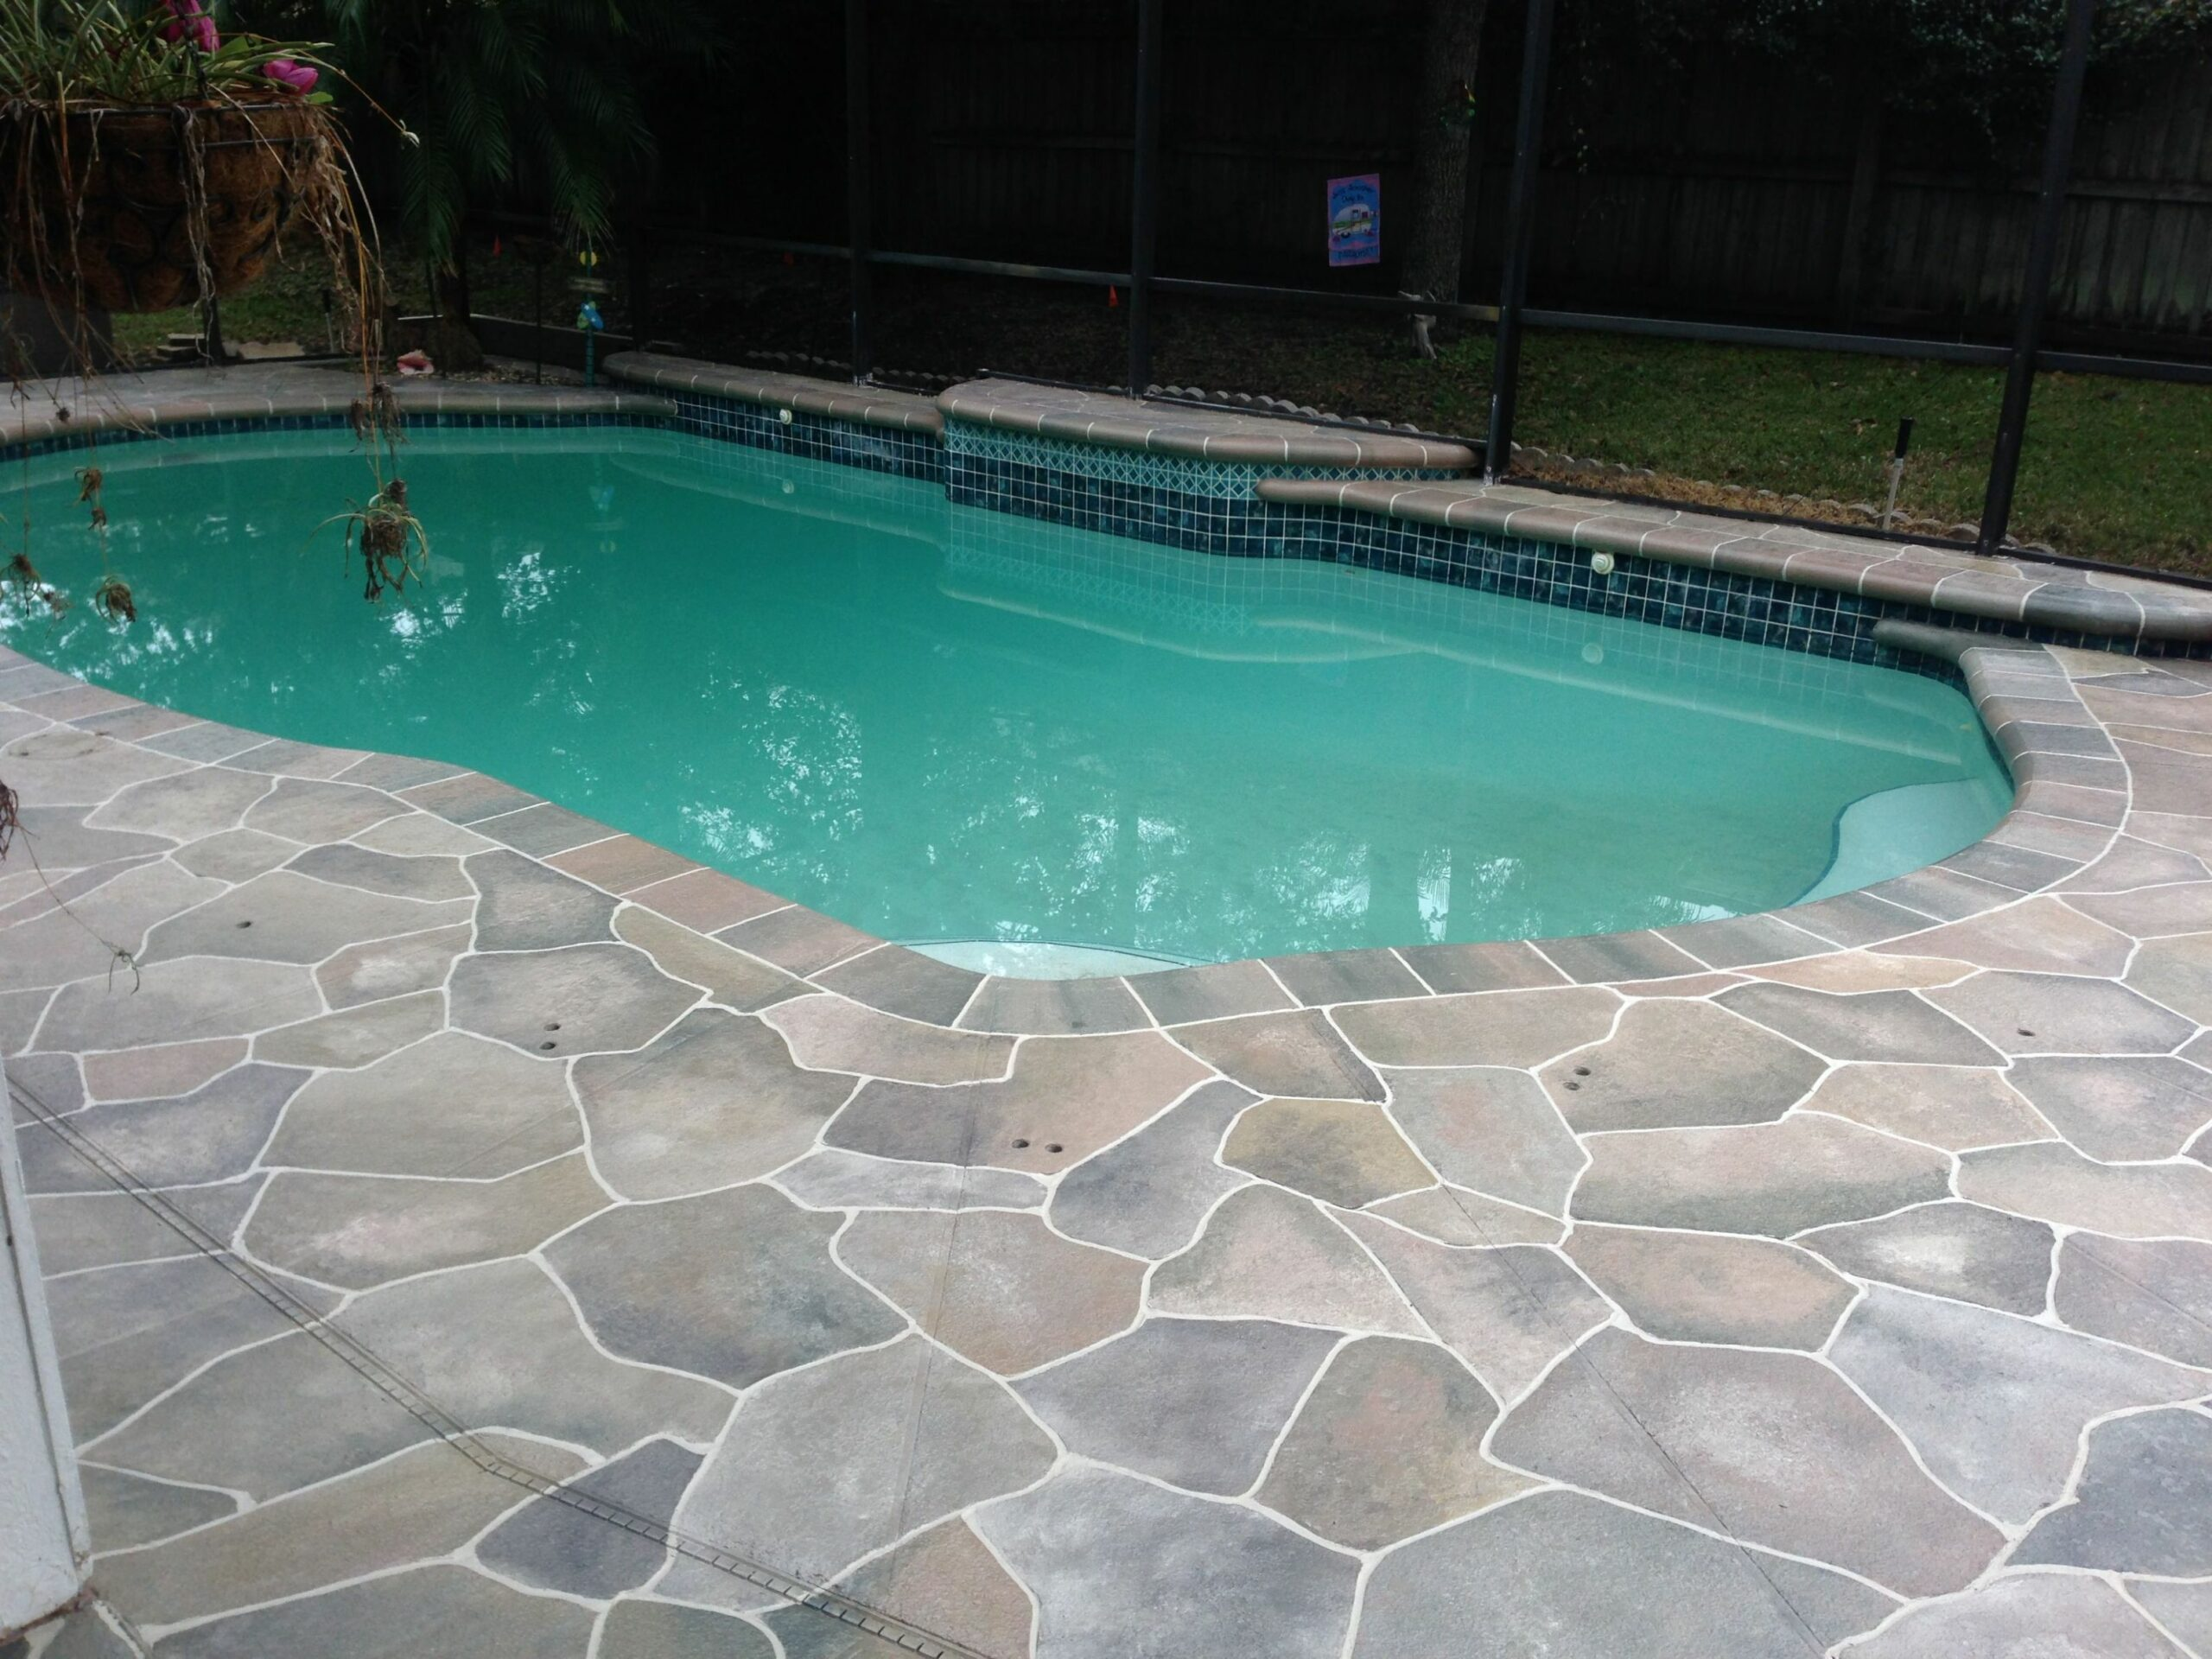 colored concrete pool deck ideas | Flagstone pool deck | Pool deck ..